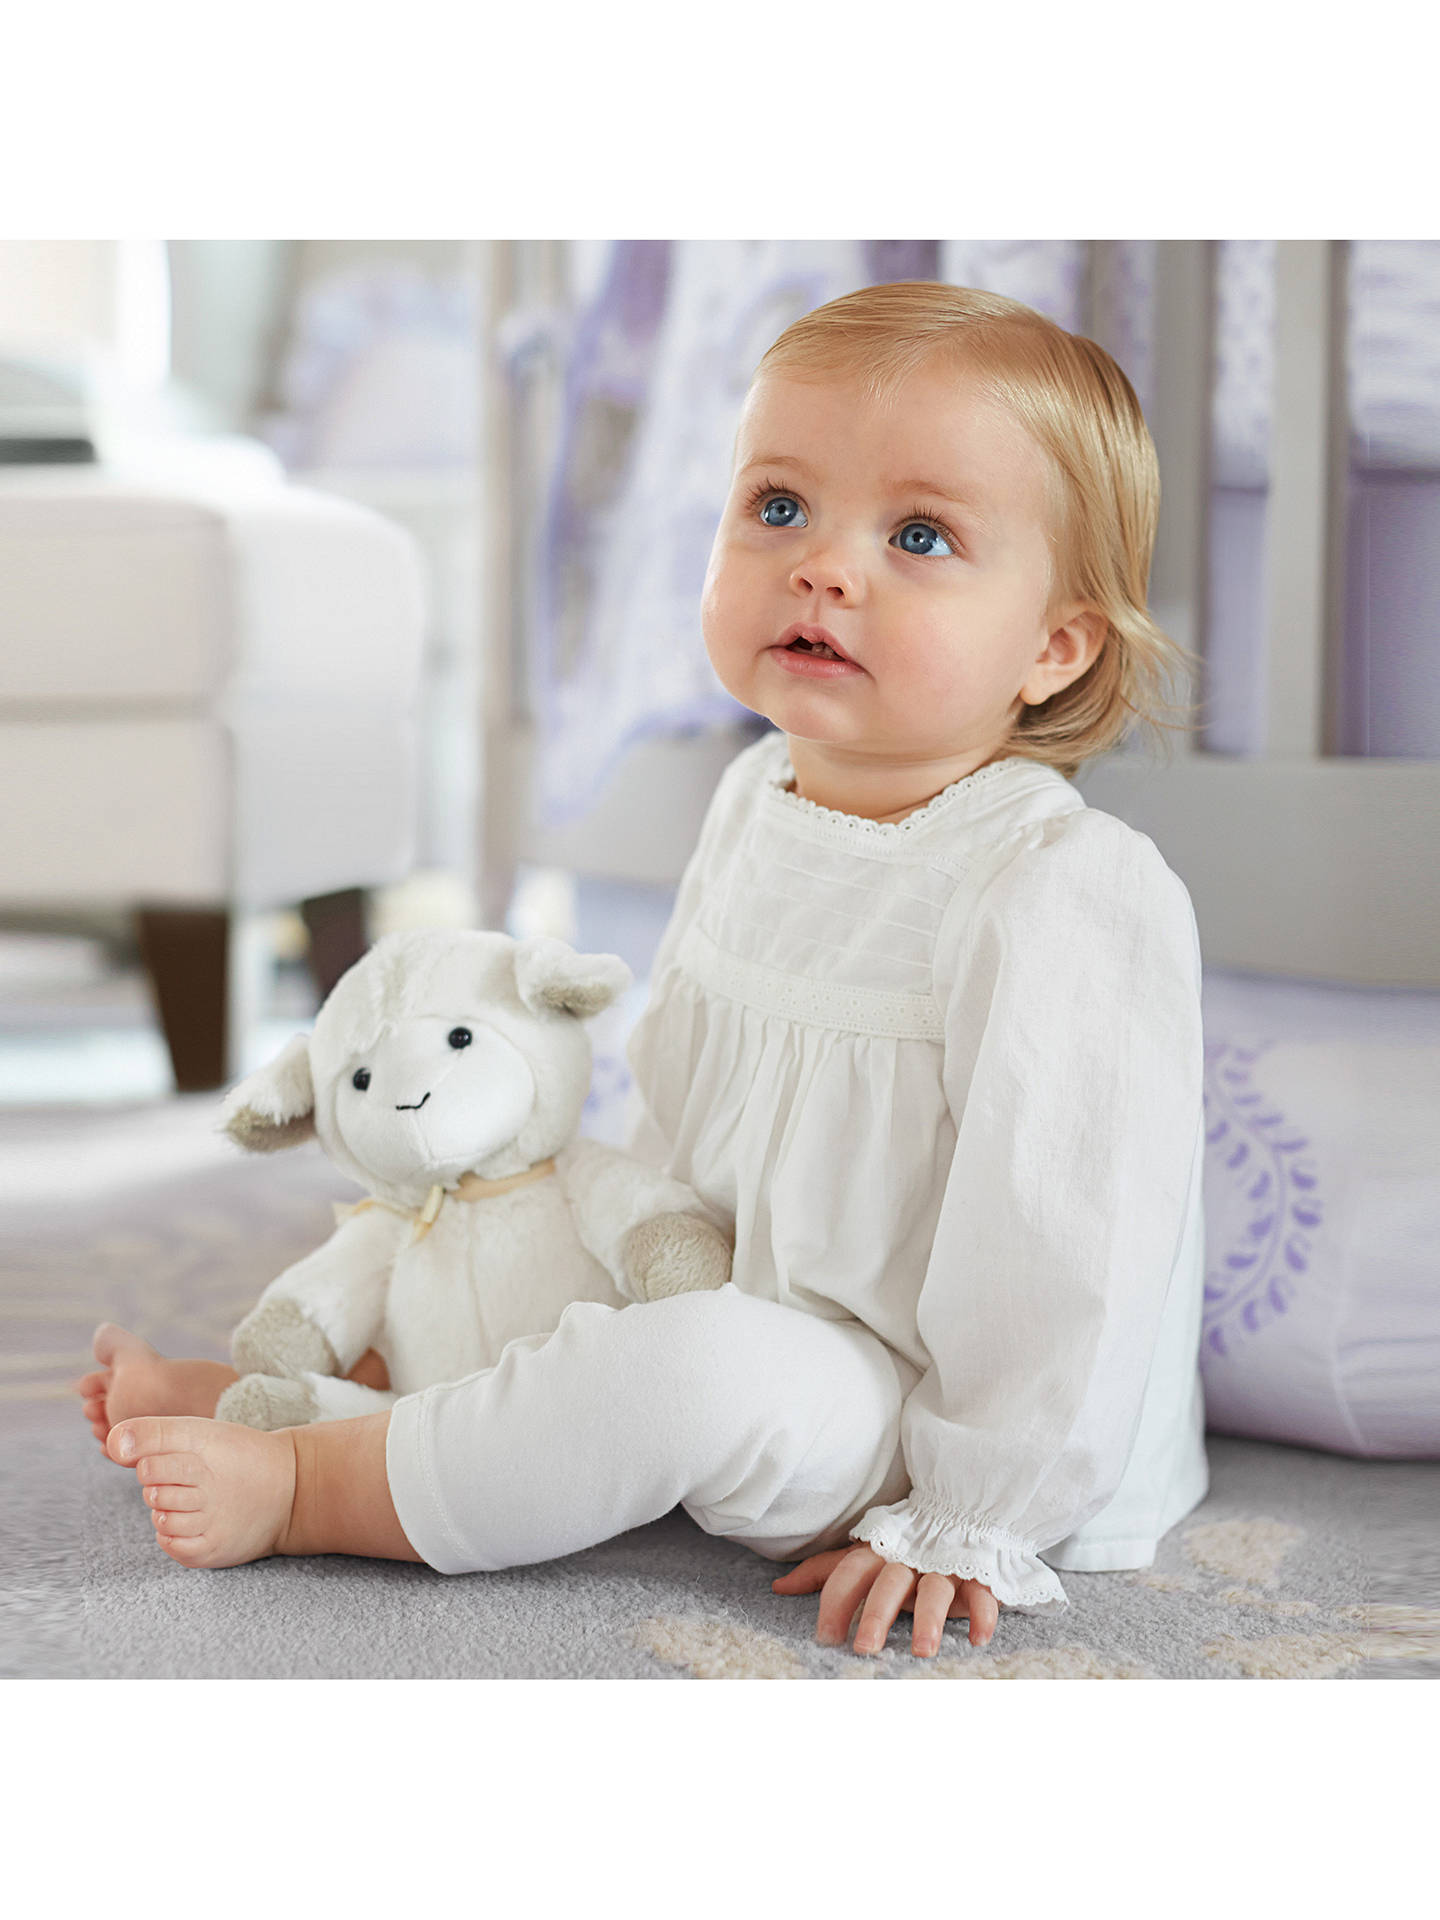 Buy Pottery Barn Kids Plush Lamb Soft Toy, Small Online at johnlewis.com